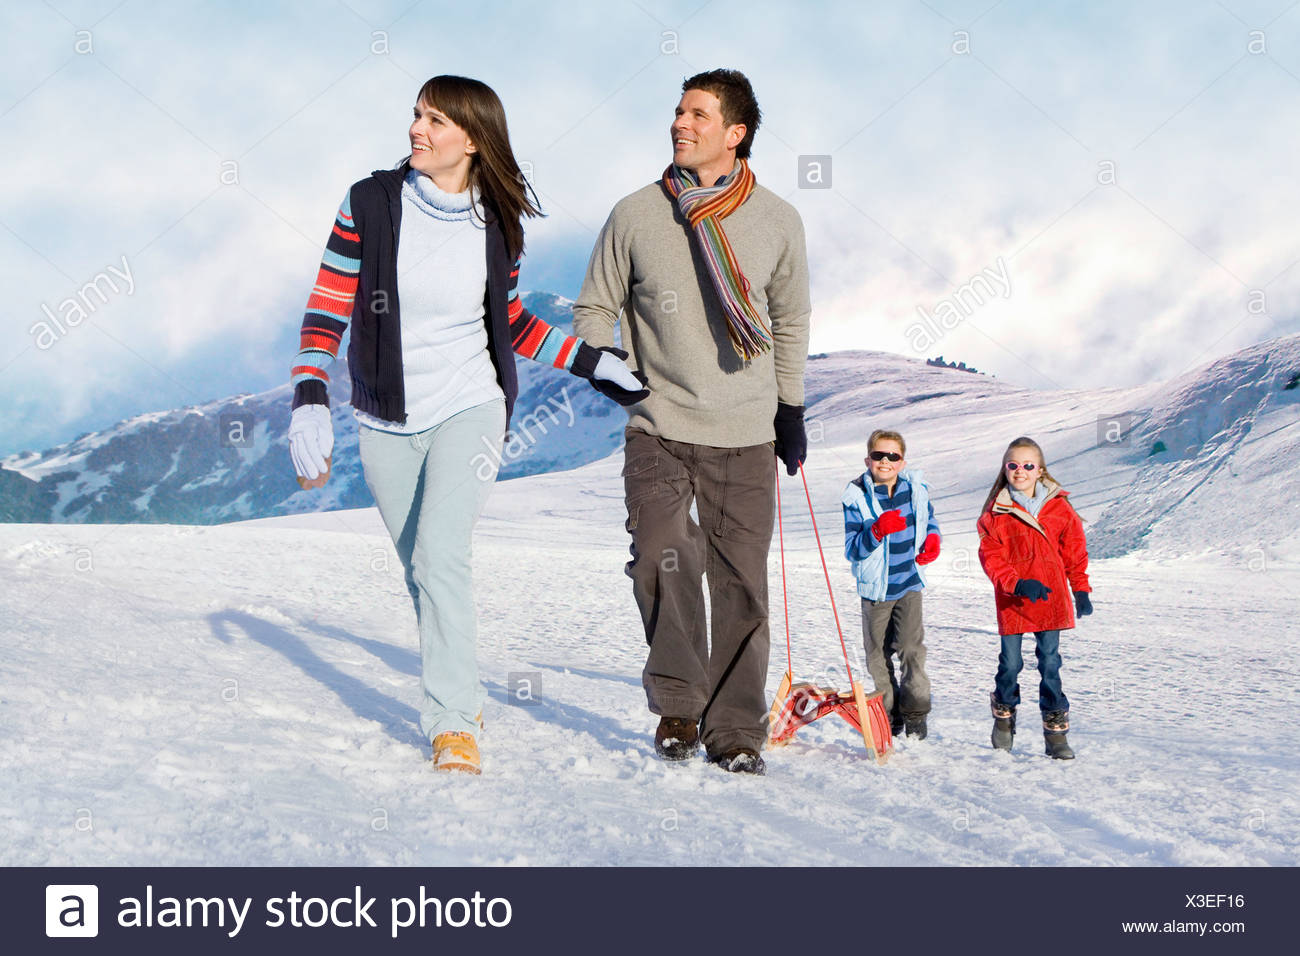 Family pulling sled in snow - Stock Image